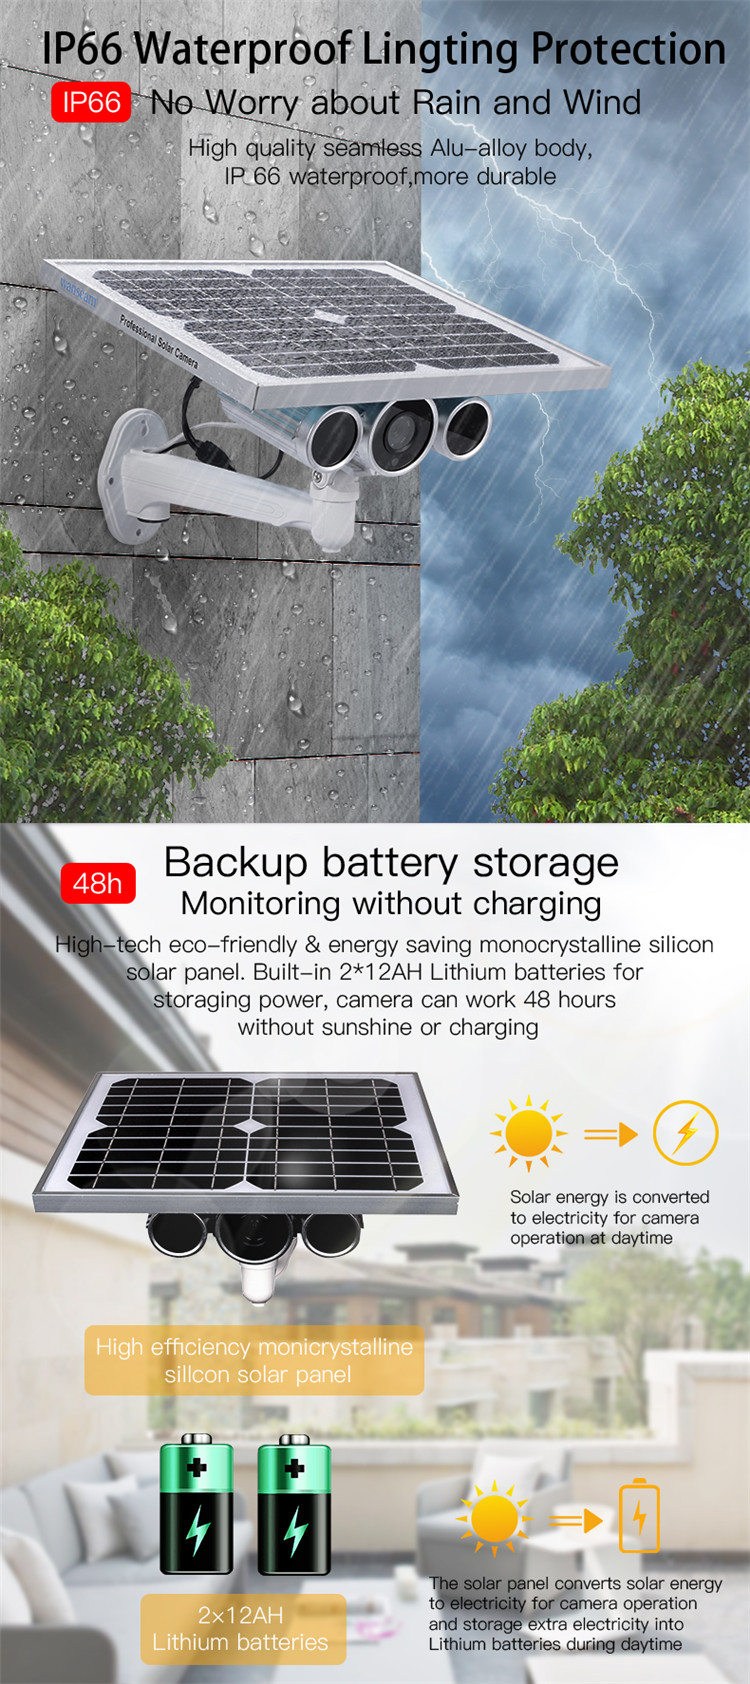 WANSCAM HW0029-5 Built-in LI Battery 24AH P2P Ap Onvif Wireless 2MP Outdoor HD Solar Power IP Camera Built-in 16GB SD Card